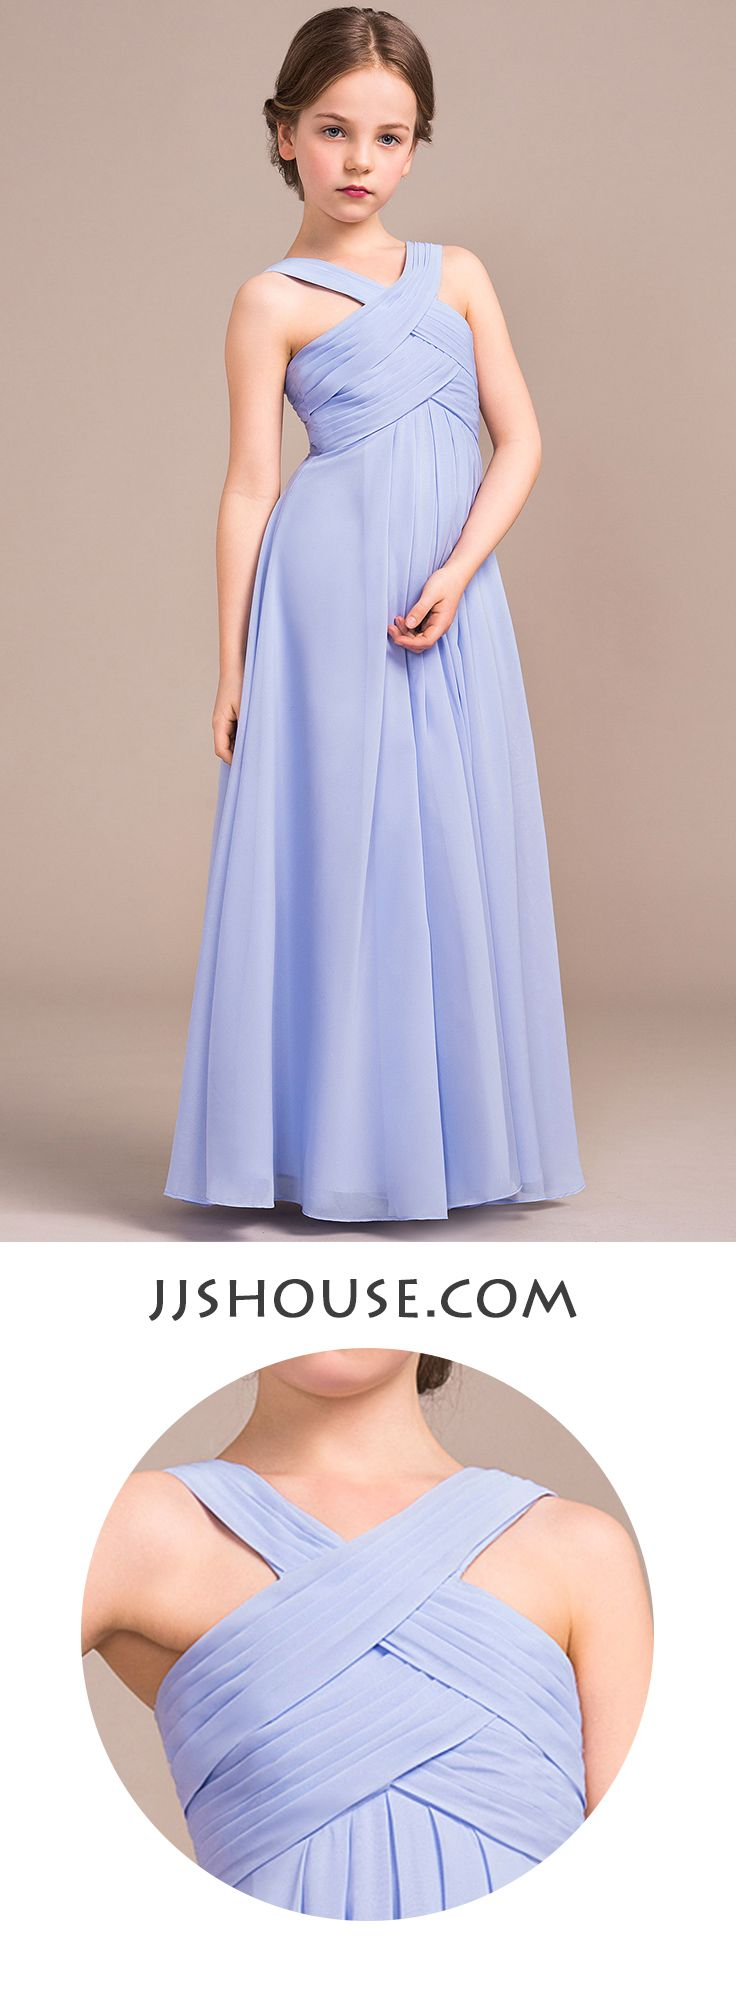 Best 25 kids bridesmaid dress ideas on pinterest pretty flower the younger girls in your party will blend seamlessly in this junior bridesmaid dress ombrellifo Image collections